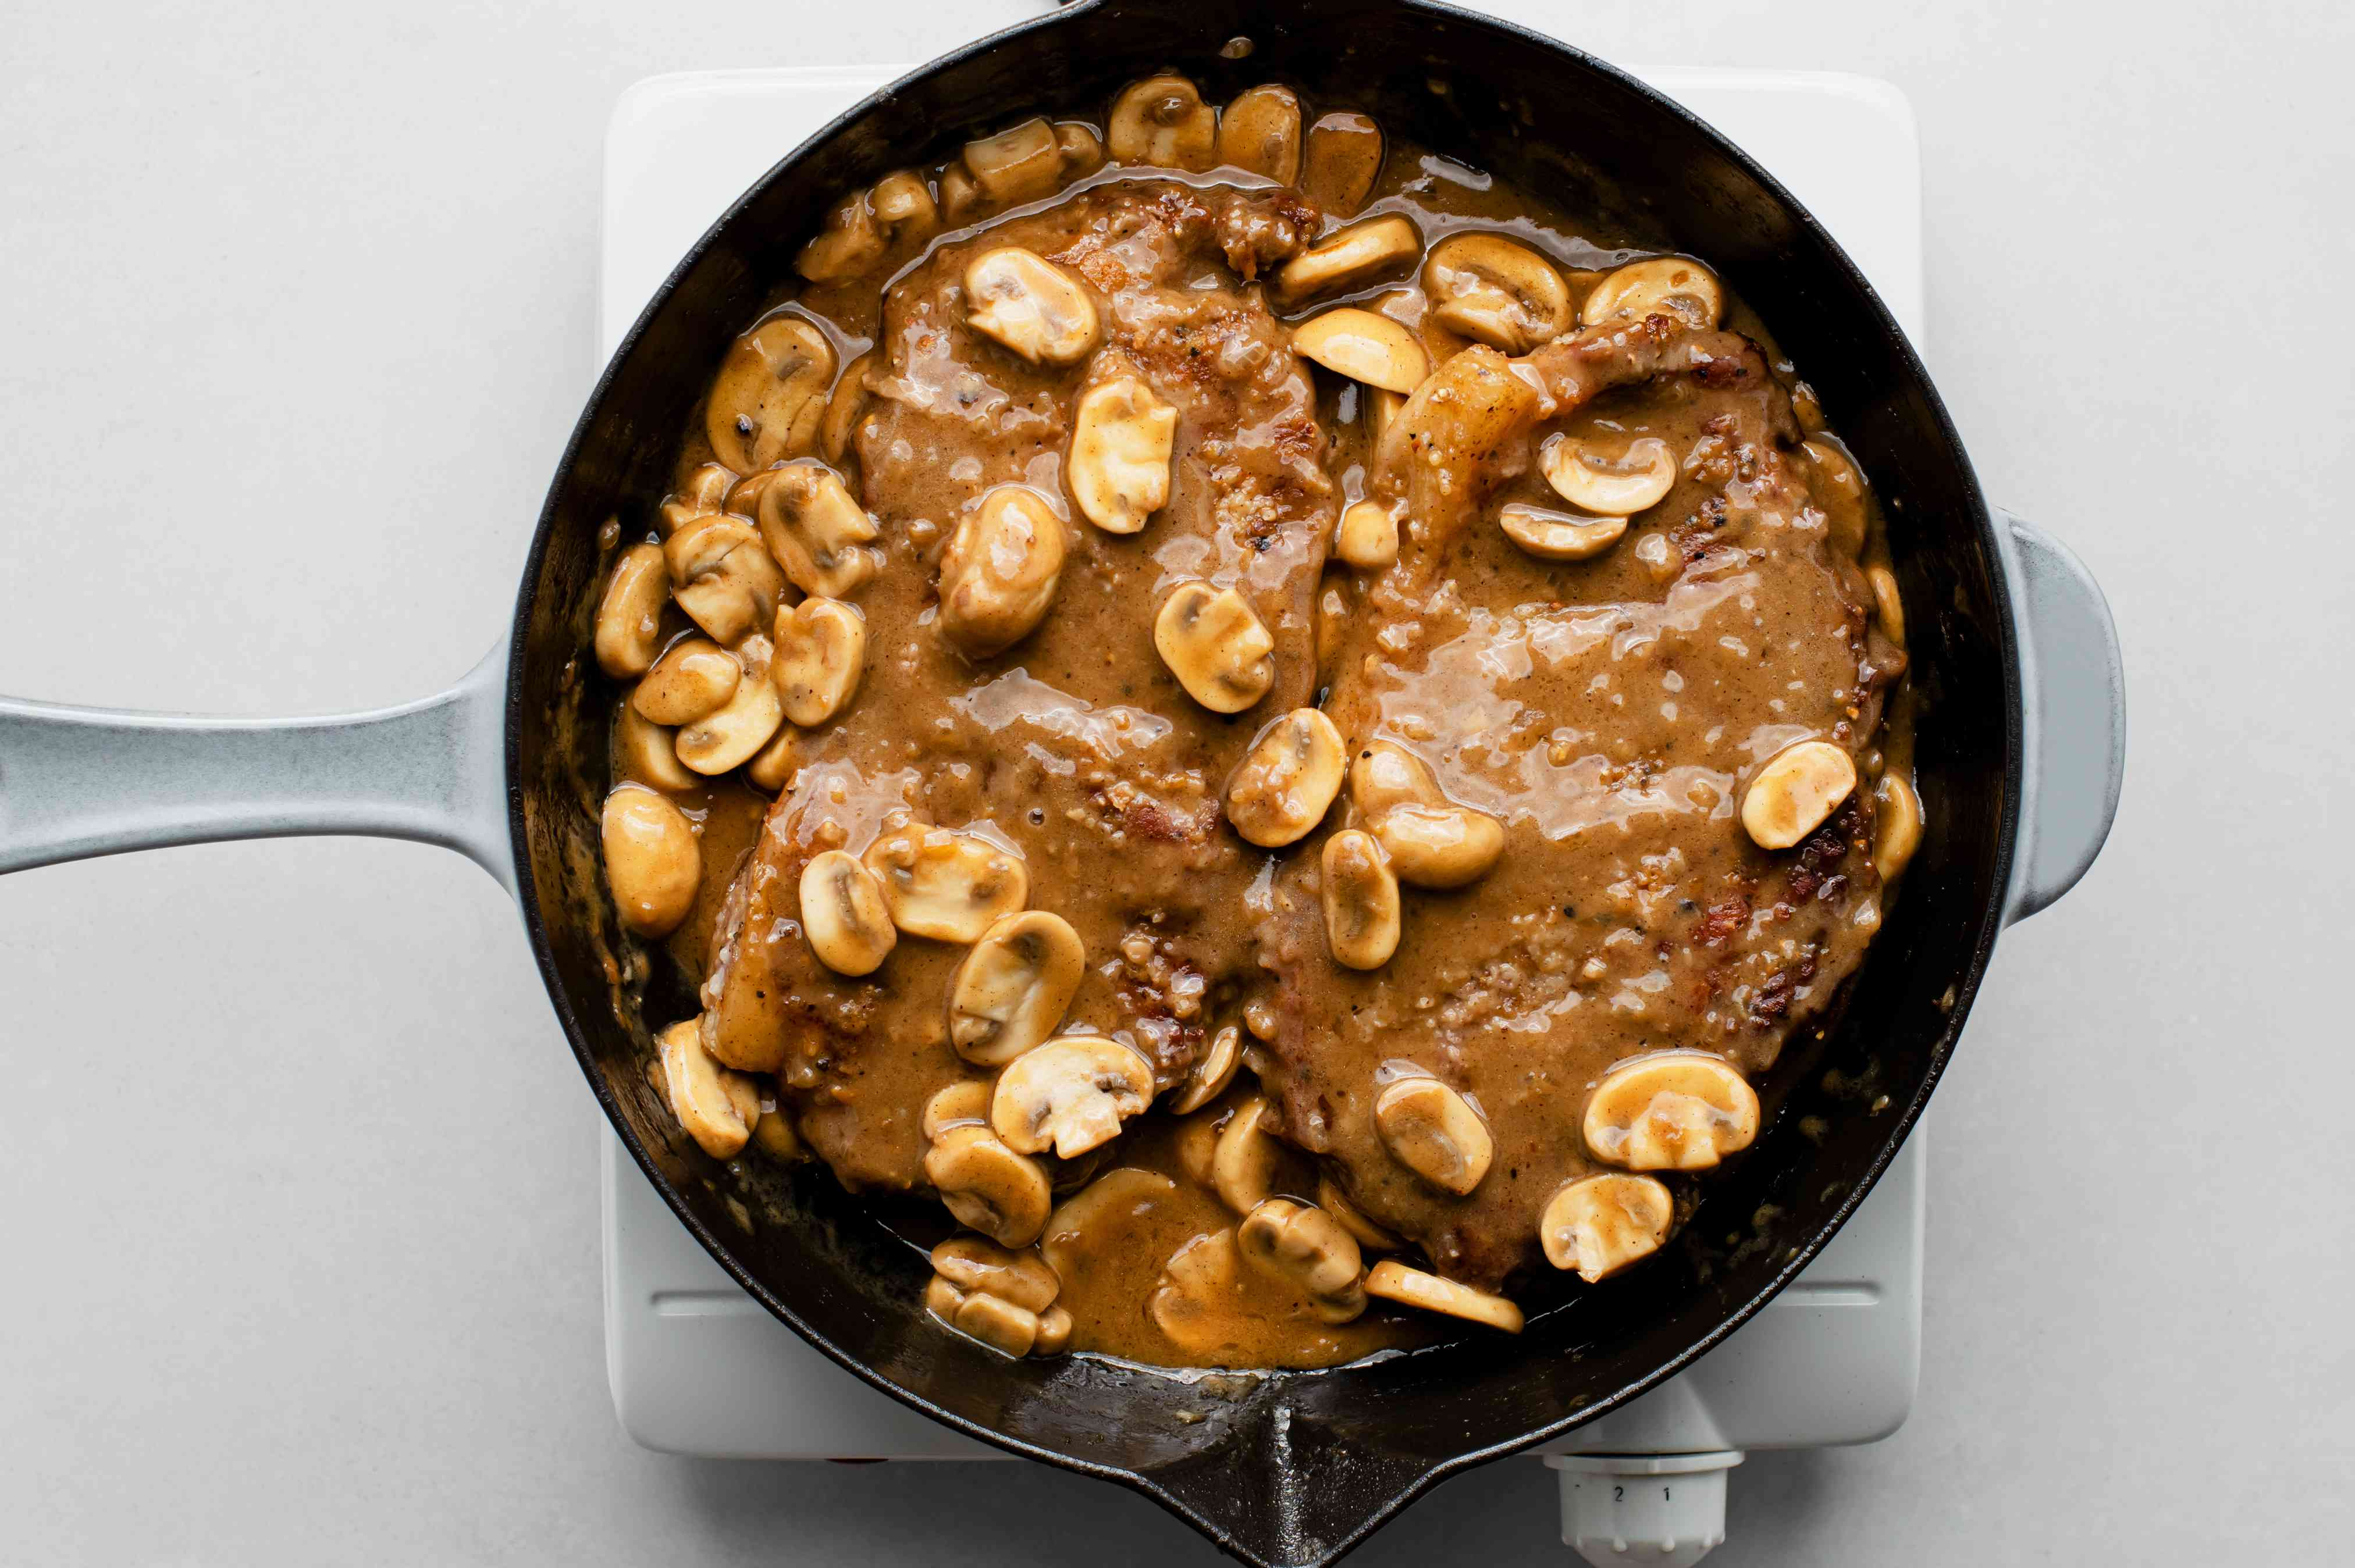 steaks cooking together with the Marsala mushroom sauce